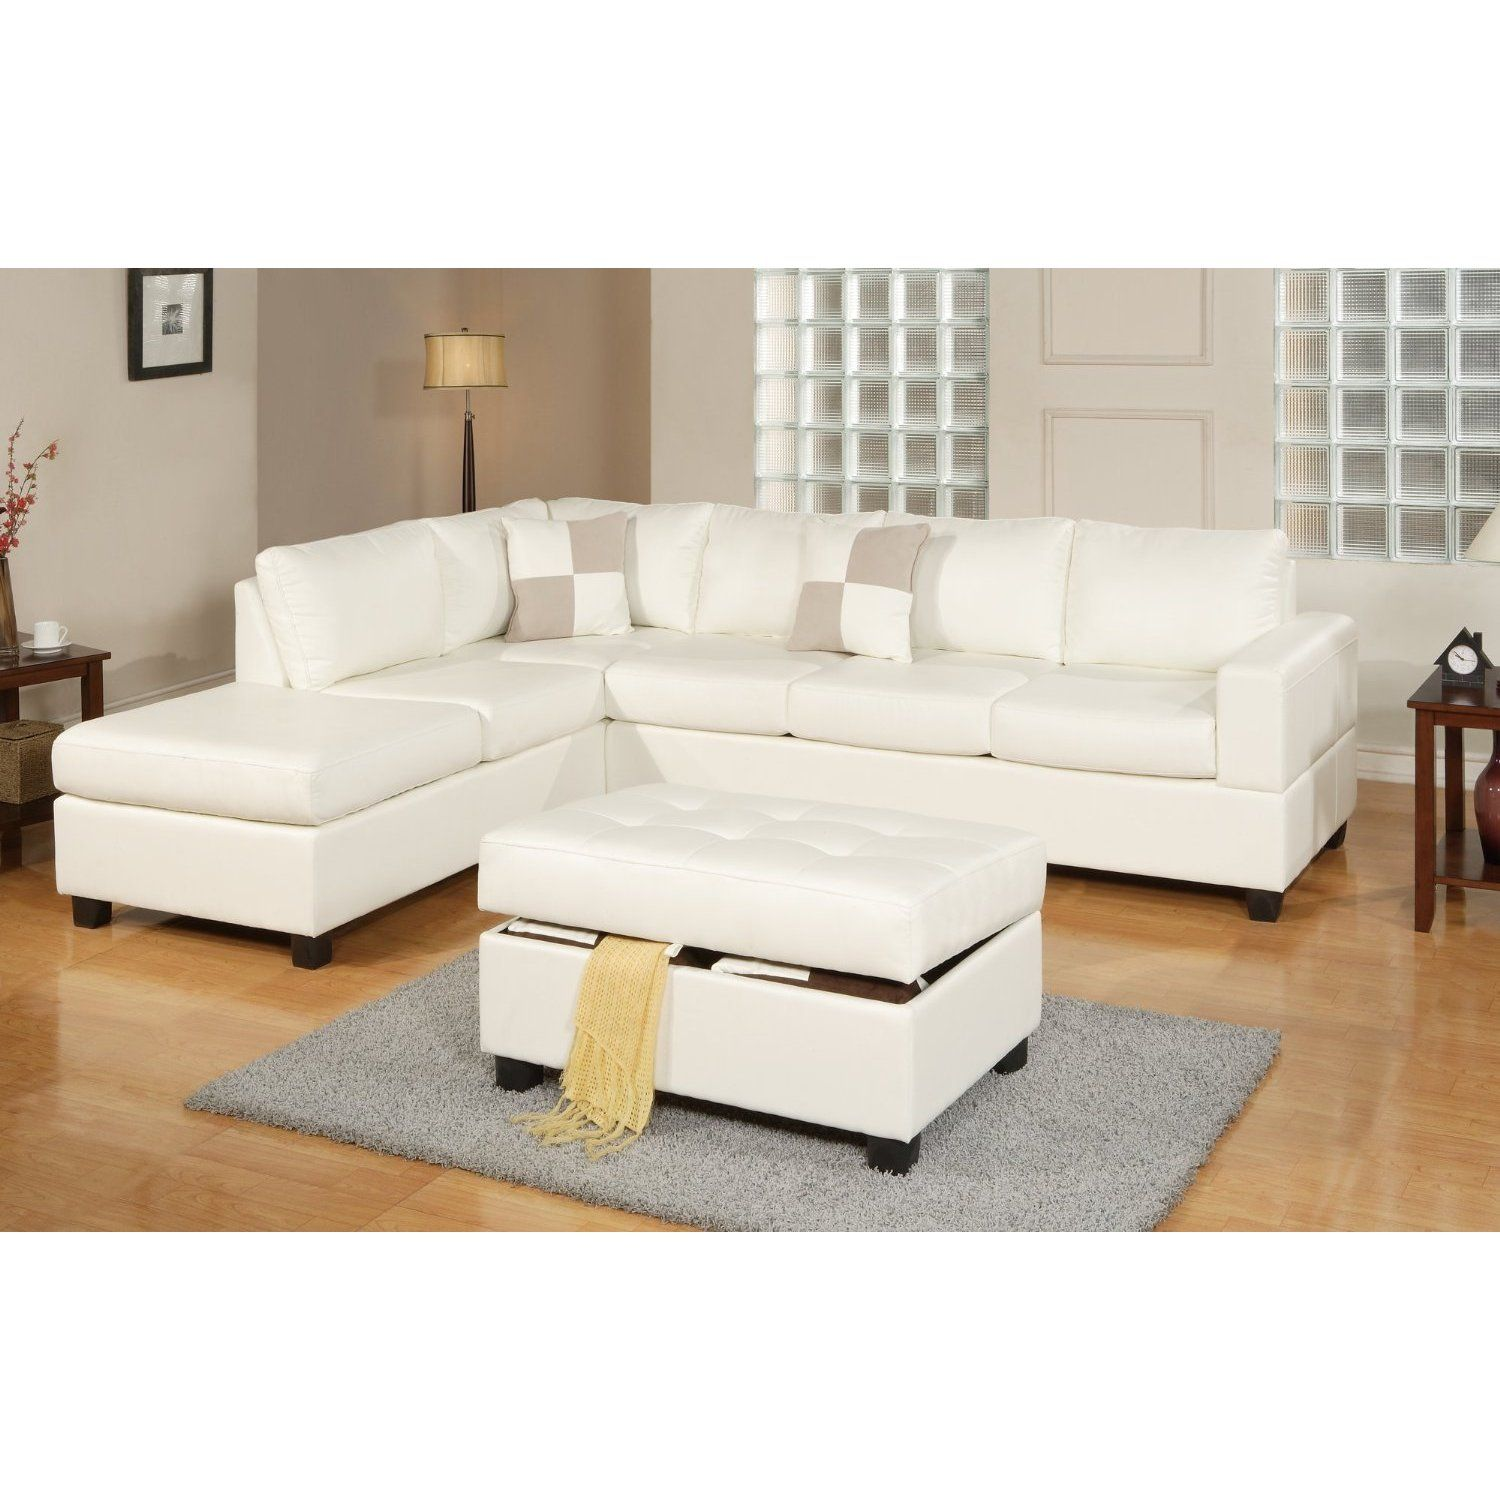 3 Piece Modern White Bonded Leather Reversible Sectional Sofa With Large Ottoman White Brown White Sectional Sofa Sectional Sofa White Leather Sofas